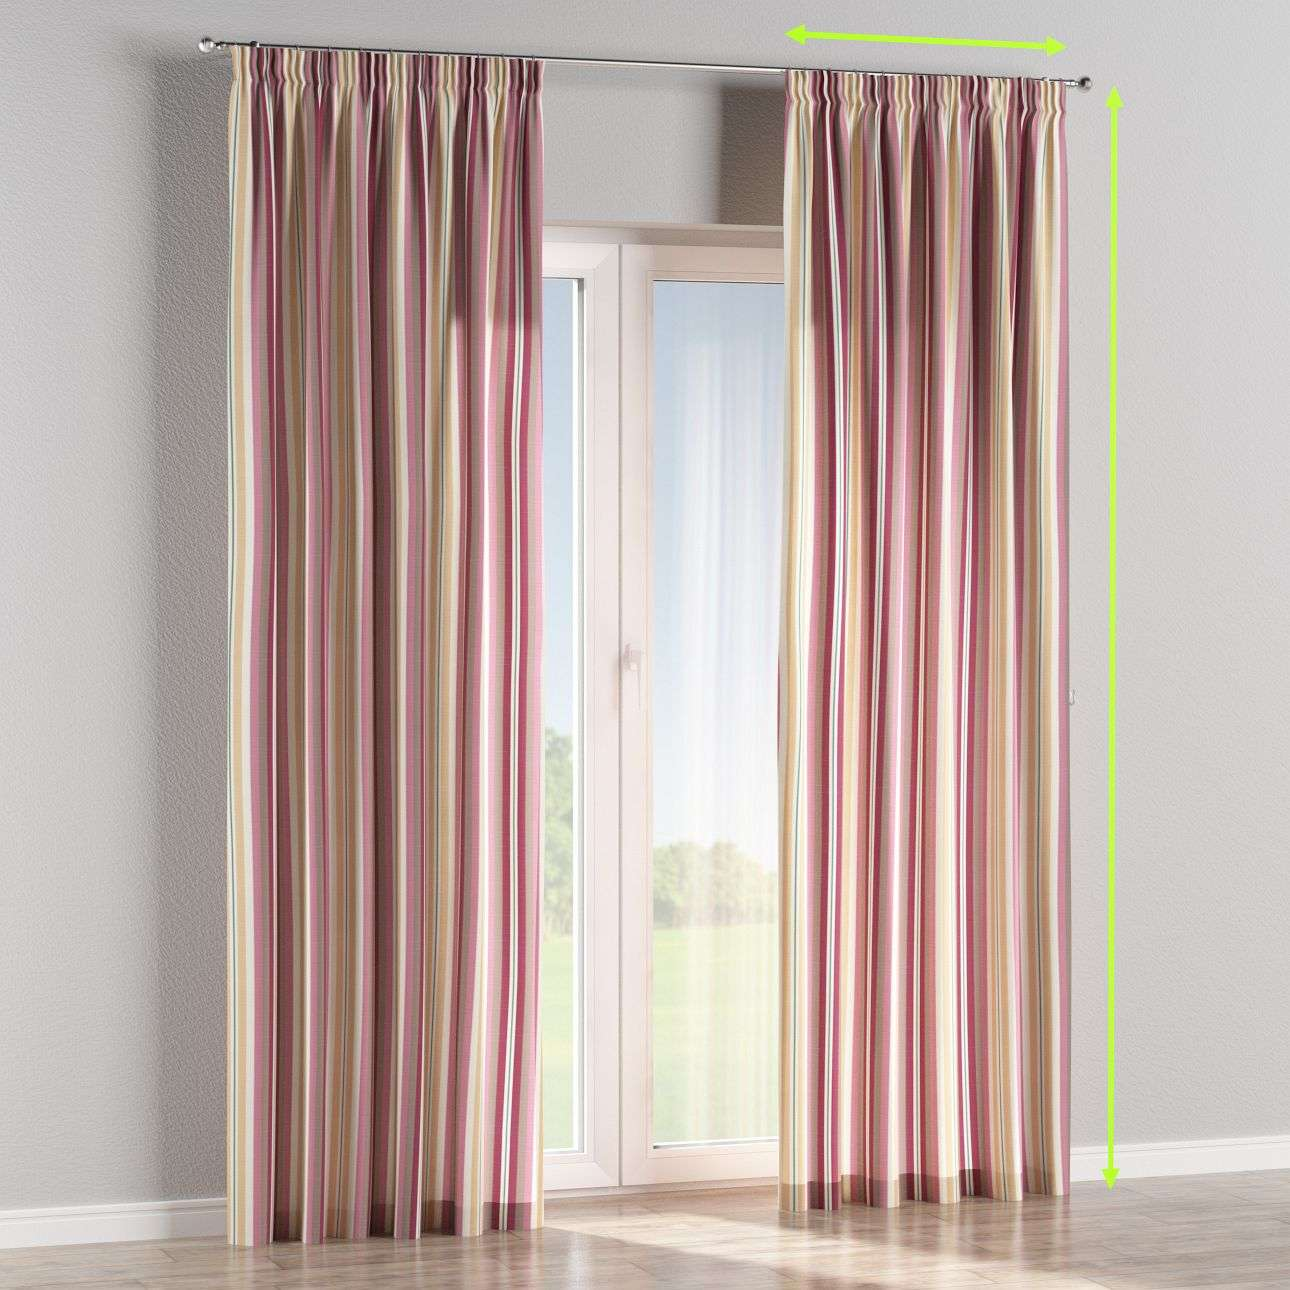 Pencil pleat lined curtains in collection Mirella, fabric: 141-14